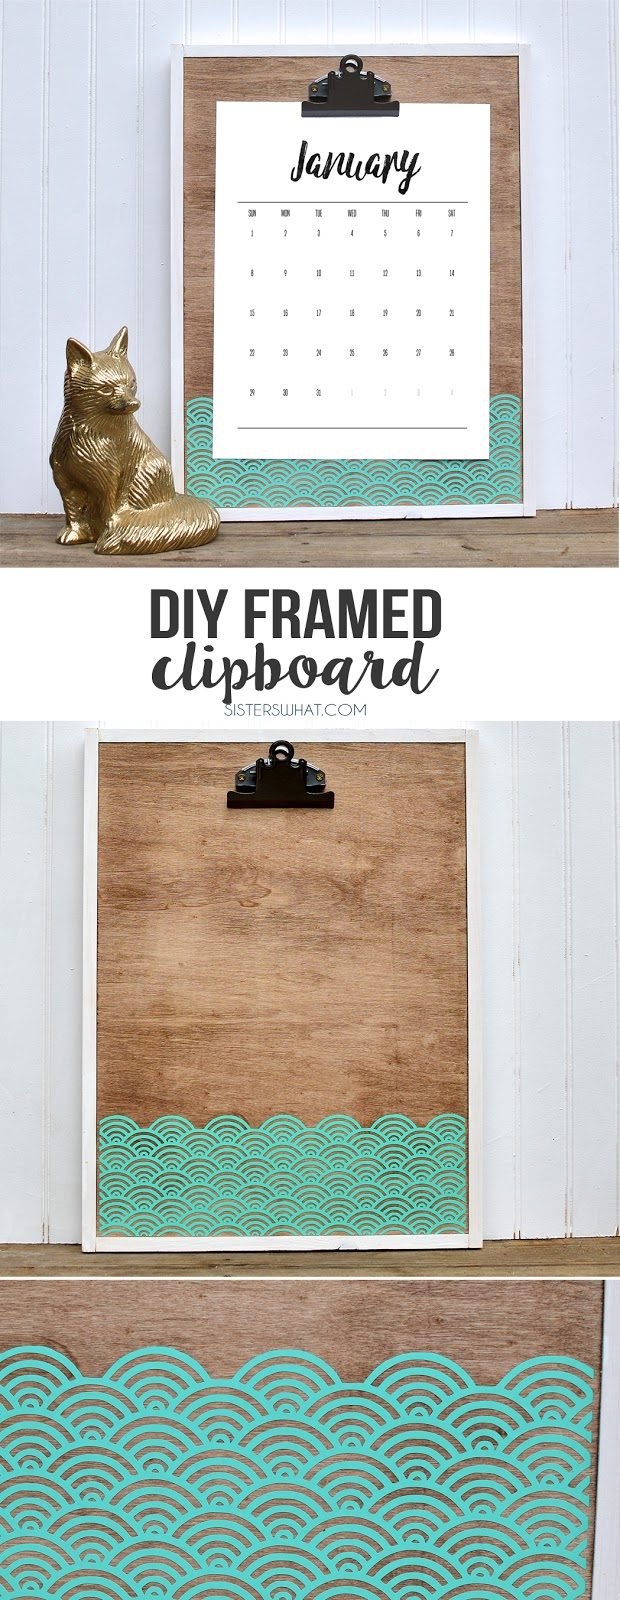 This is a DIY framed clipboard that is easy to customize to any size and add some color with vinyl!